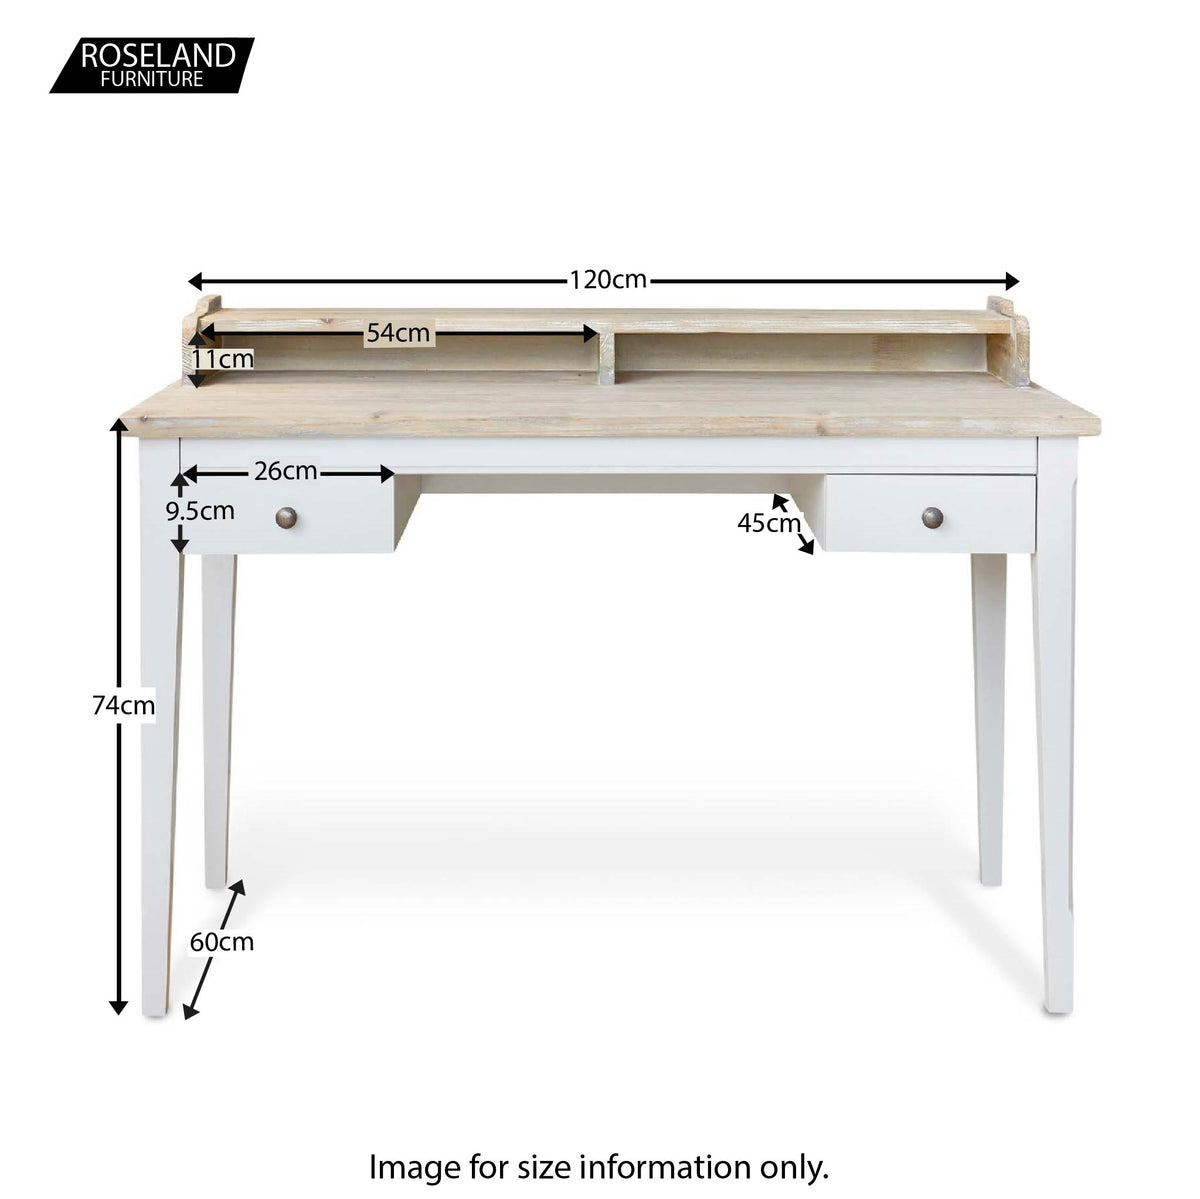 Signature Desk Dressing Table - Size Guide